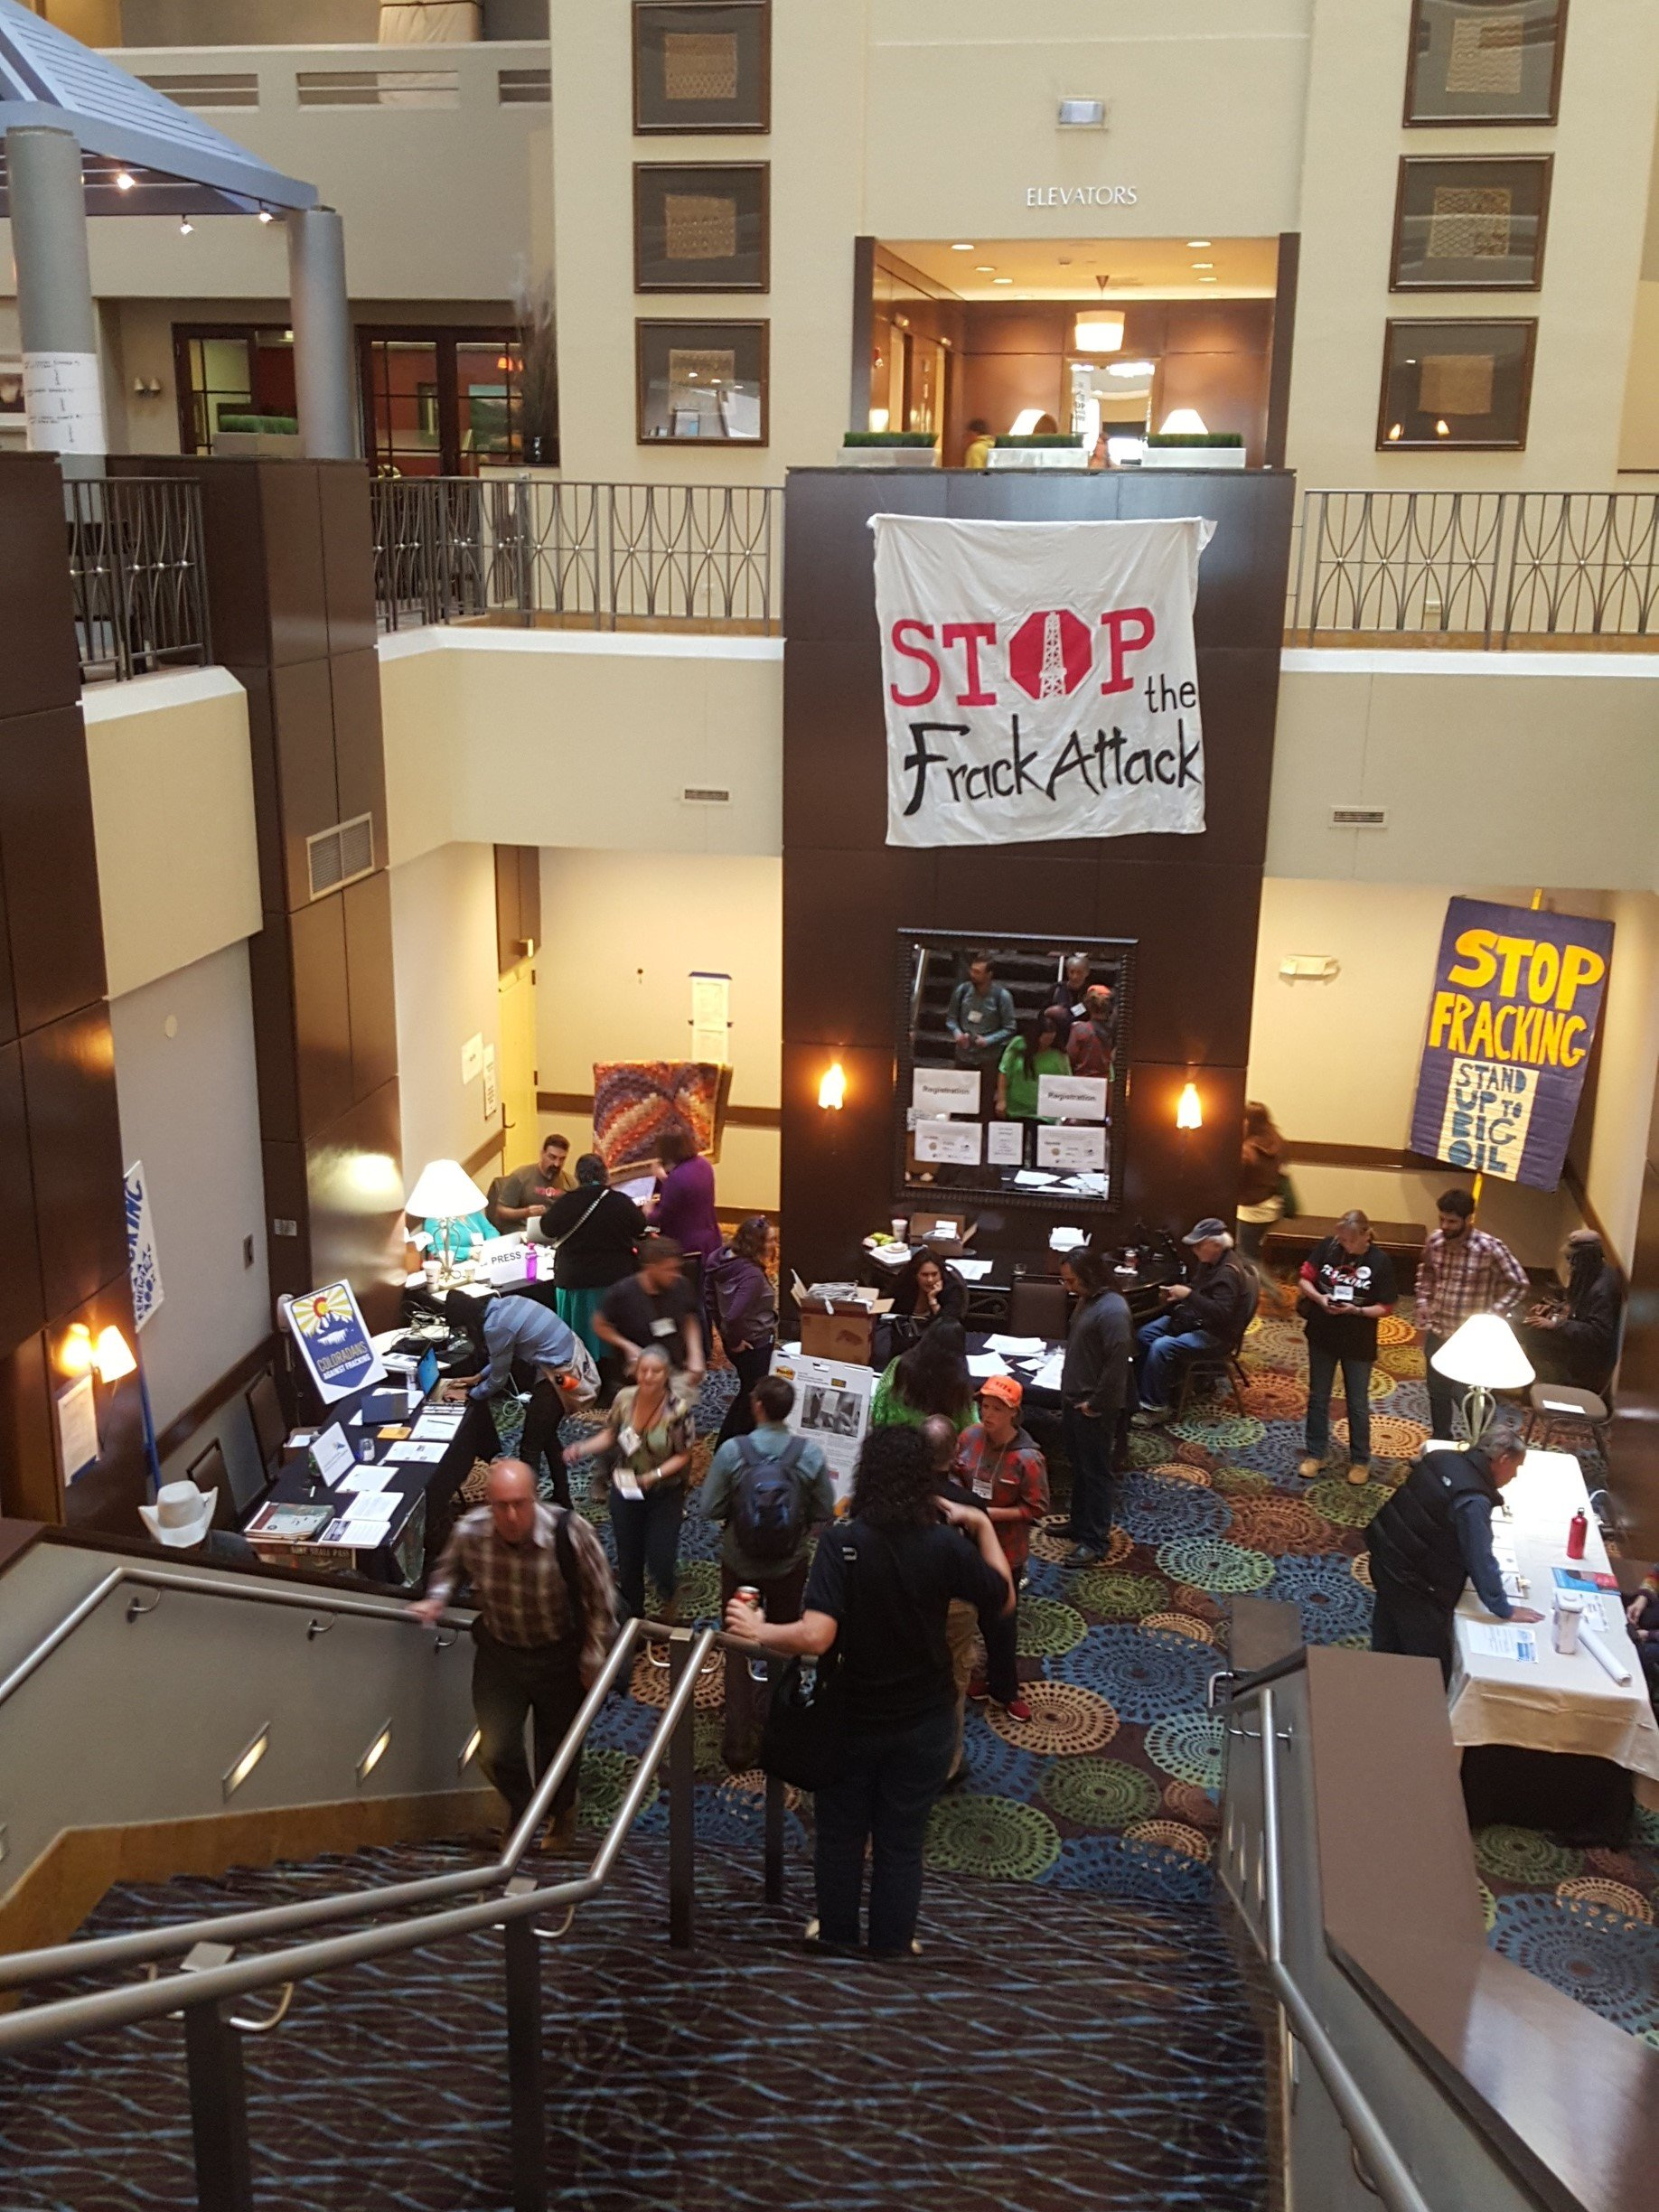 STOP THE FRACK ATTACK lobby in Denver, CO.